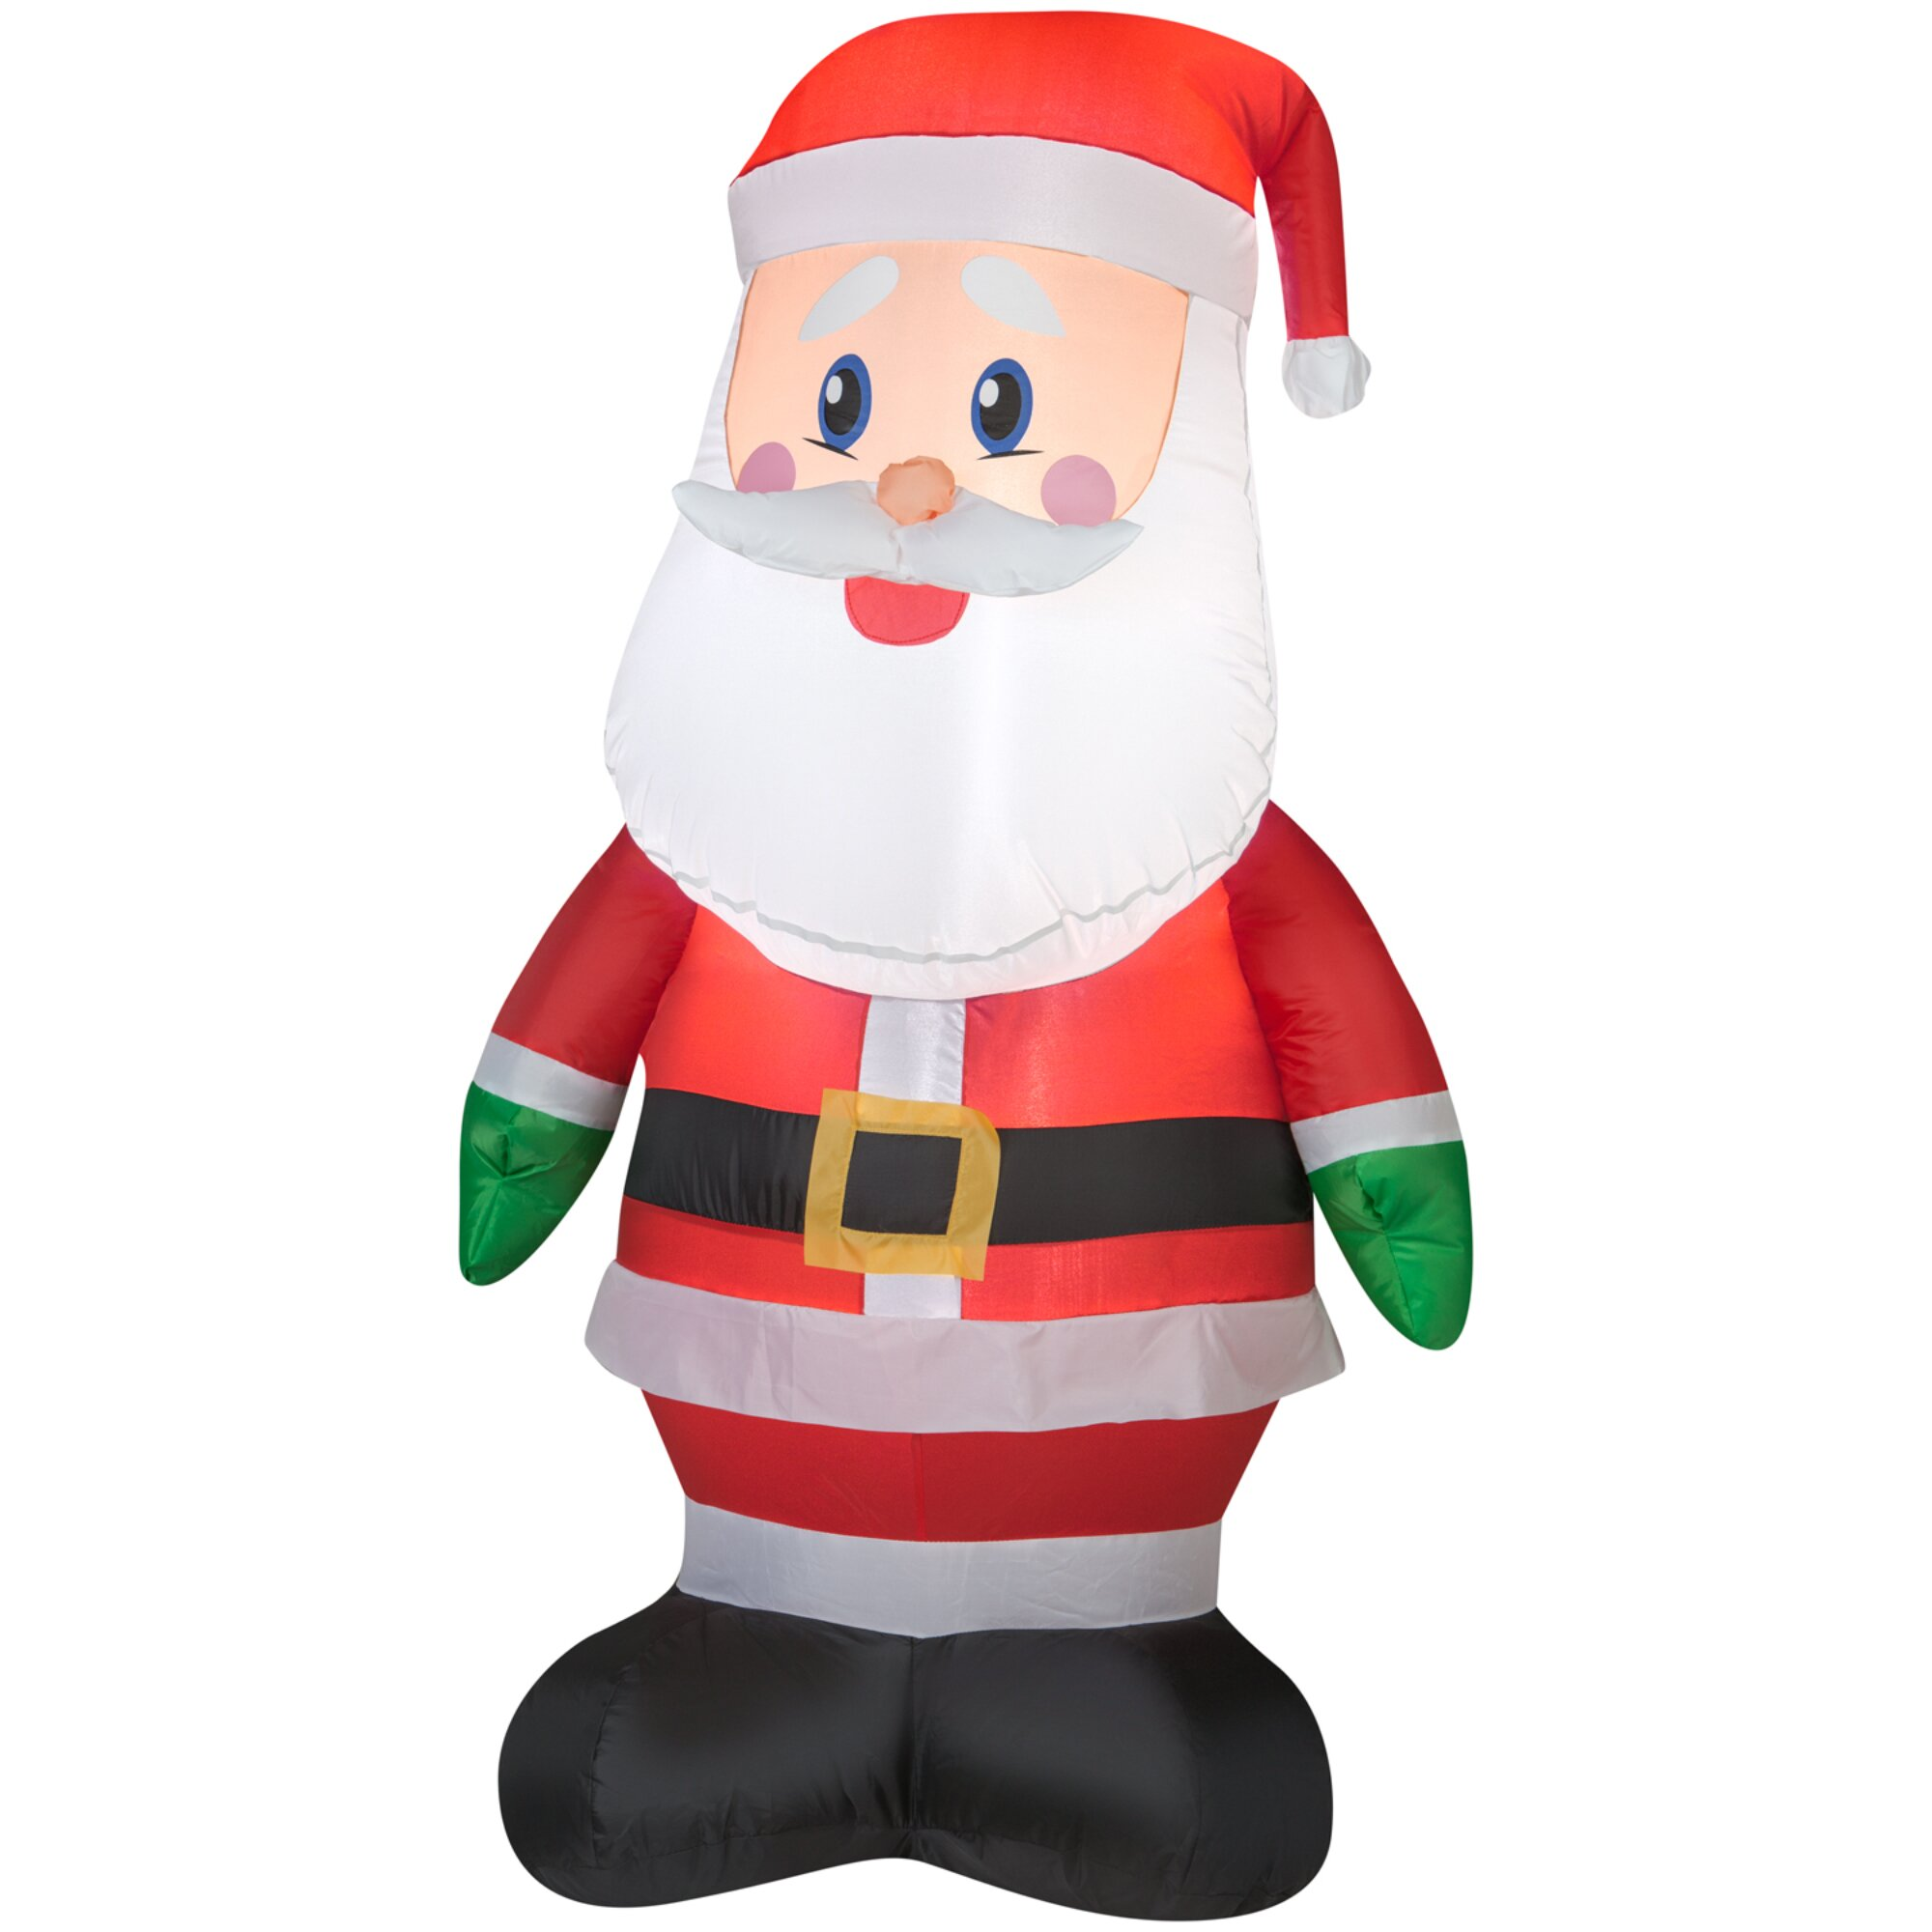 Gemmy Industries Airblown Inflatables Outdoor Santa  : Gemmy Industries Airblown Inflatables Outdoor Santa 36789X from www.wayfair.com size 2000 x 2000 jpeg 266kB